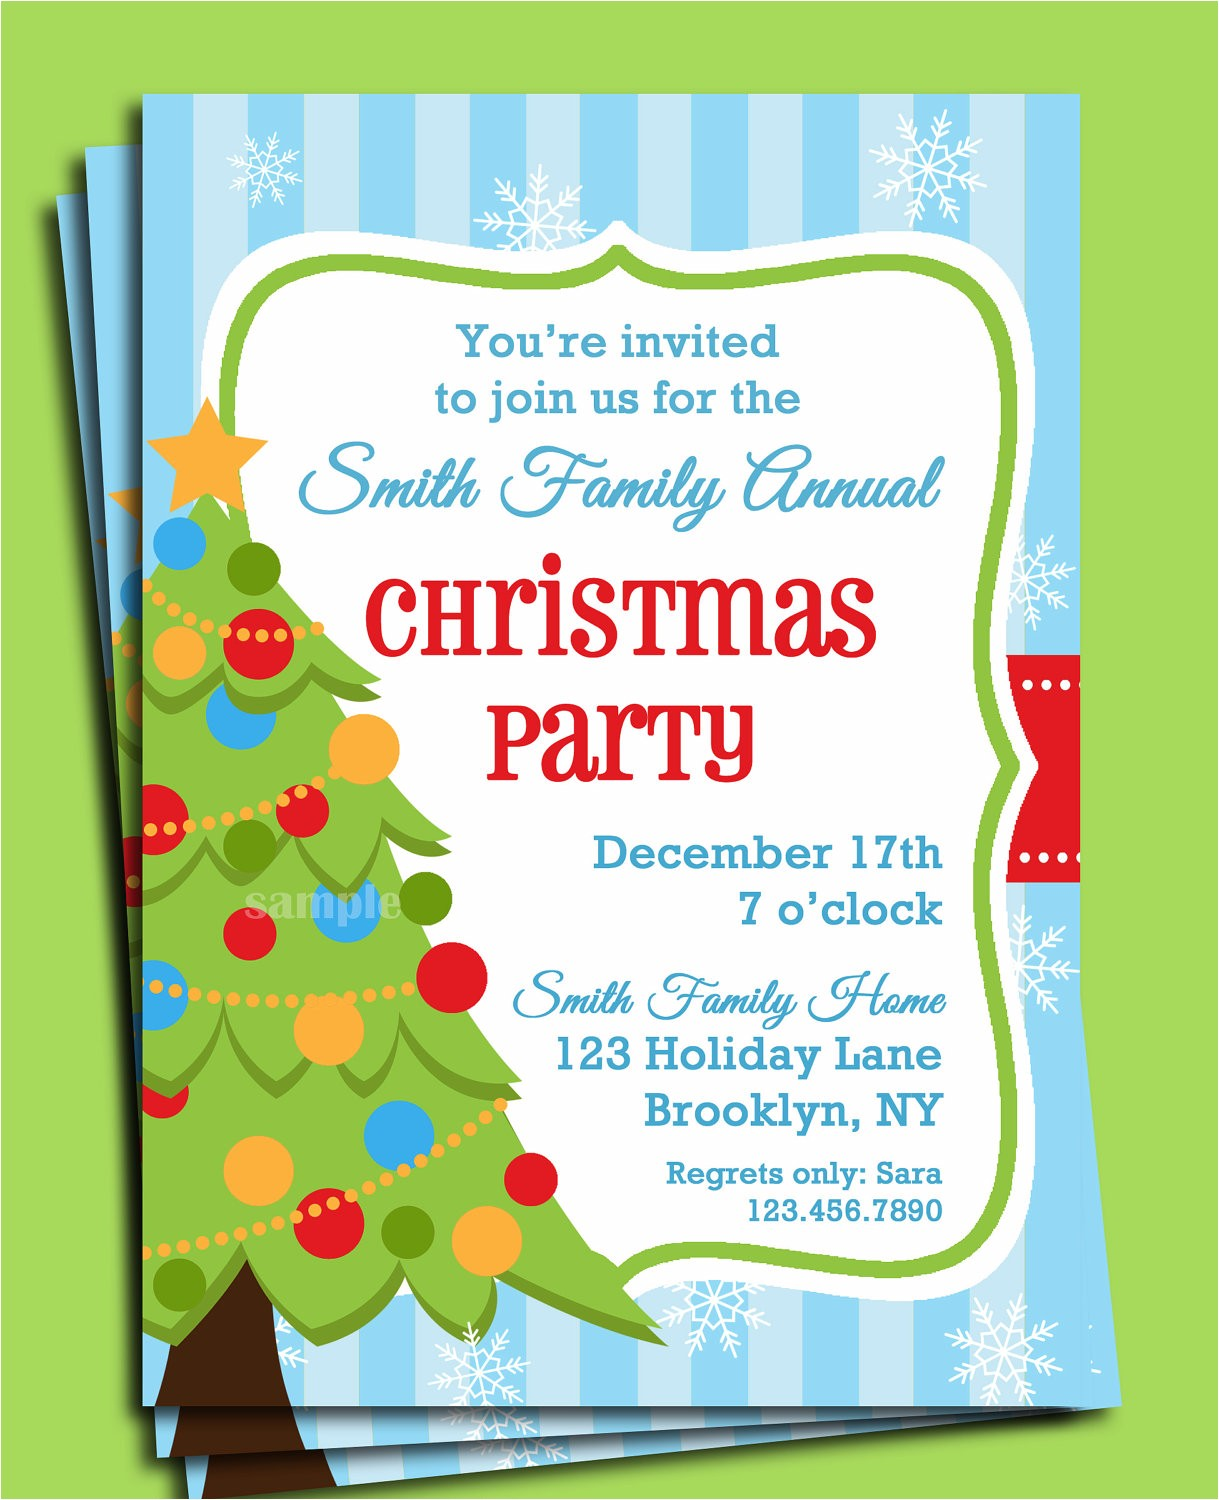 Office Christmas Party Invitation Wording Ideas Office Christmas Party Invitation Wording Cimvitation